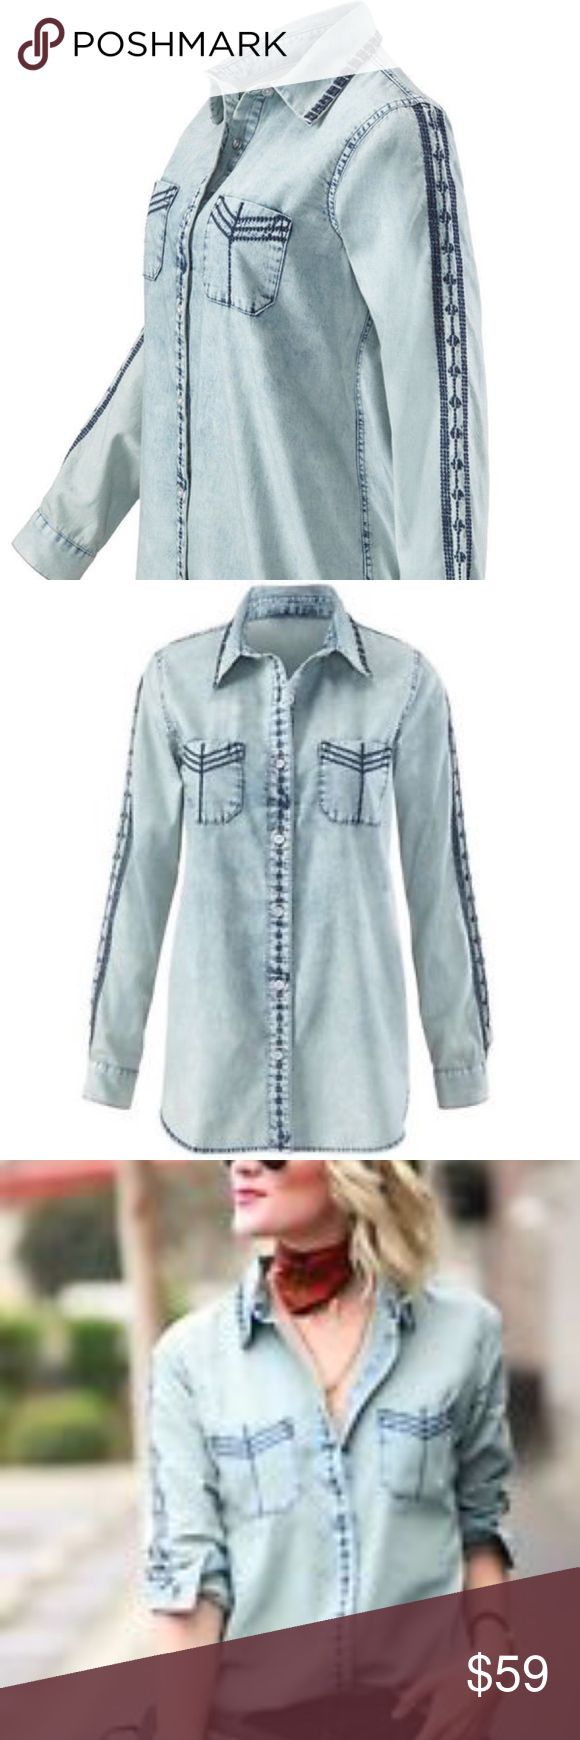 Bardot Shirt #5058 Denim Lightweight feminine feel Shirt. Looks great tied up at the front with a pretty skirt or your favorite jeans. CAbi Tops Button Down Shirts